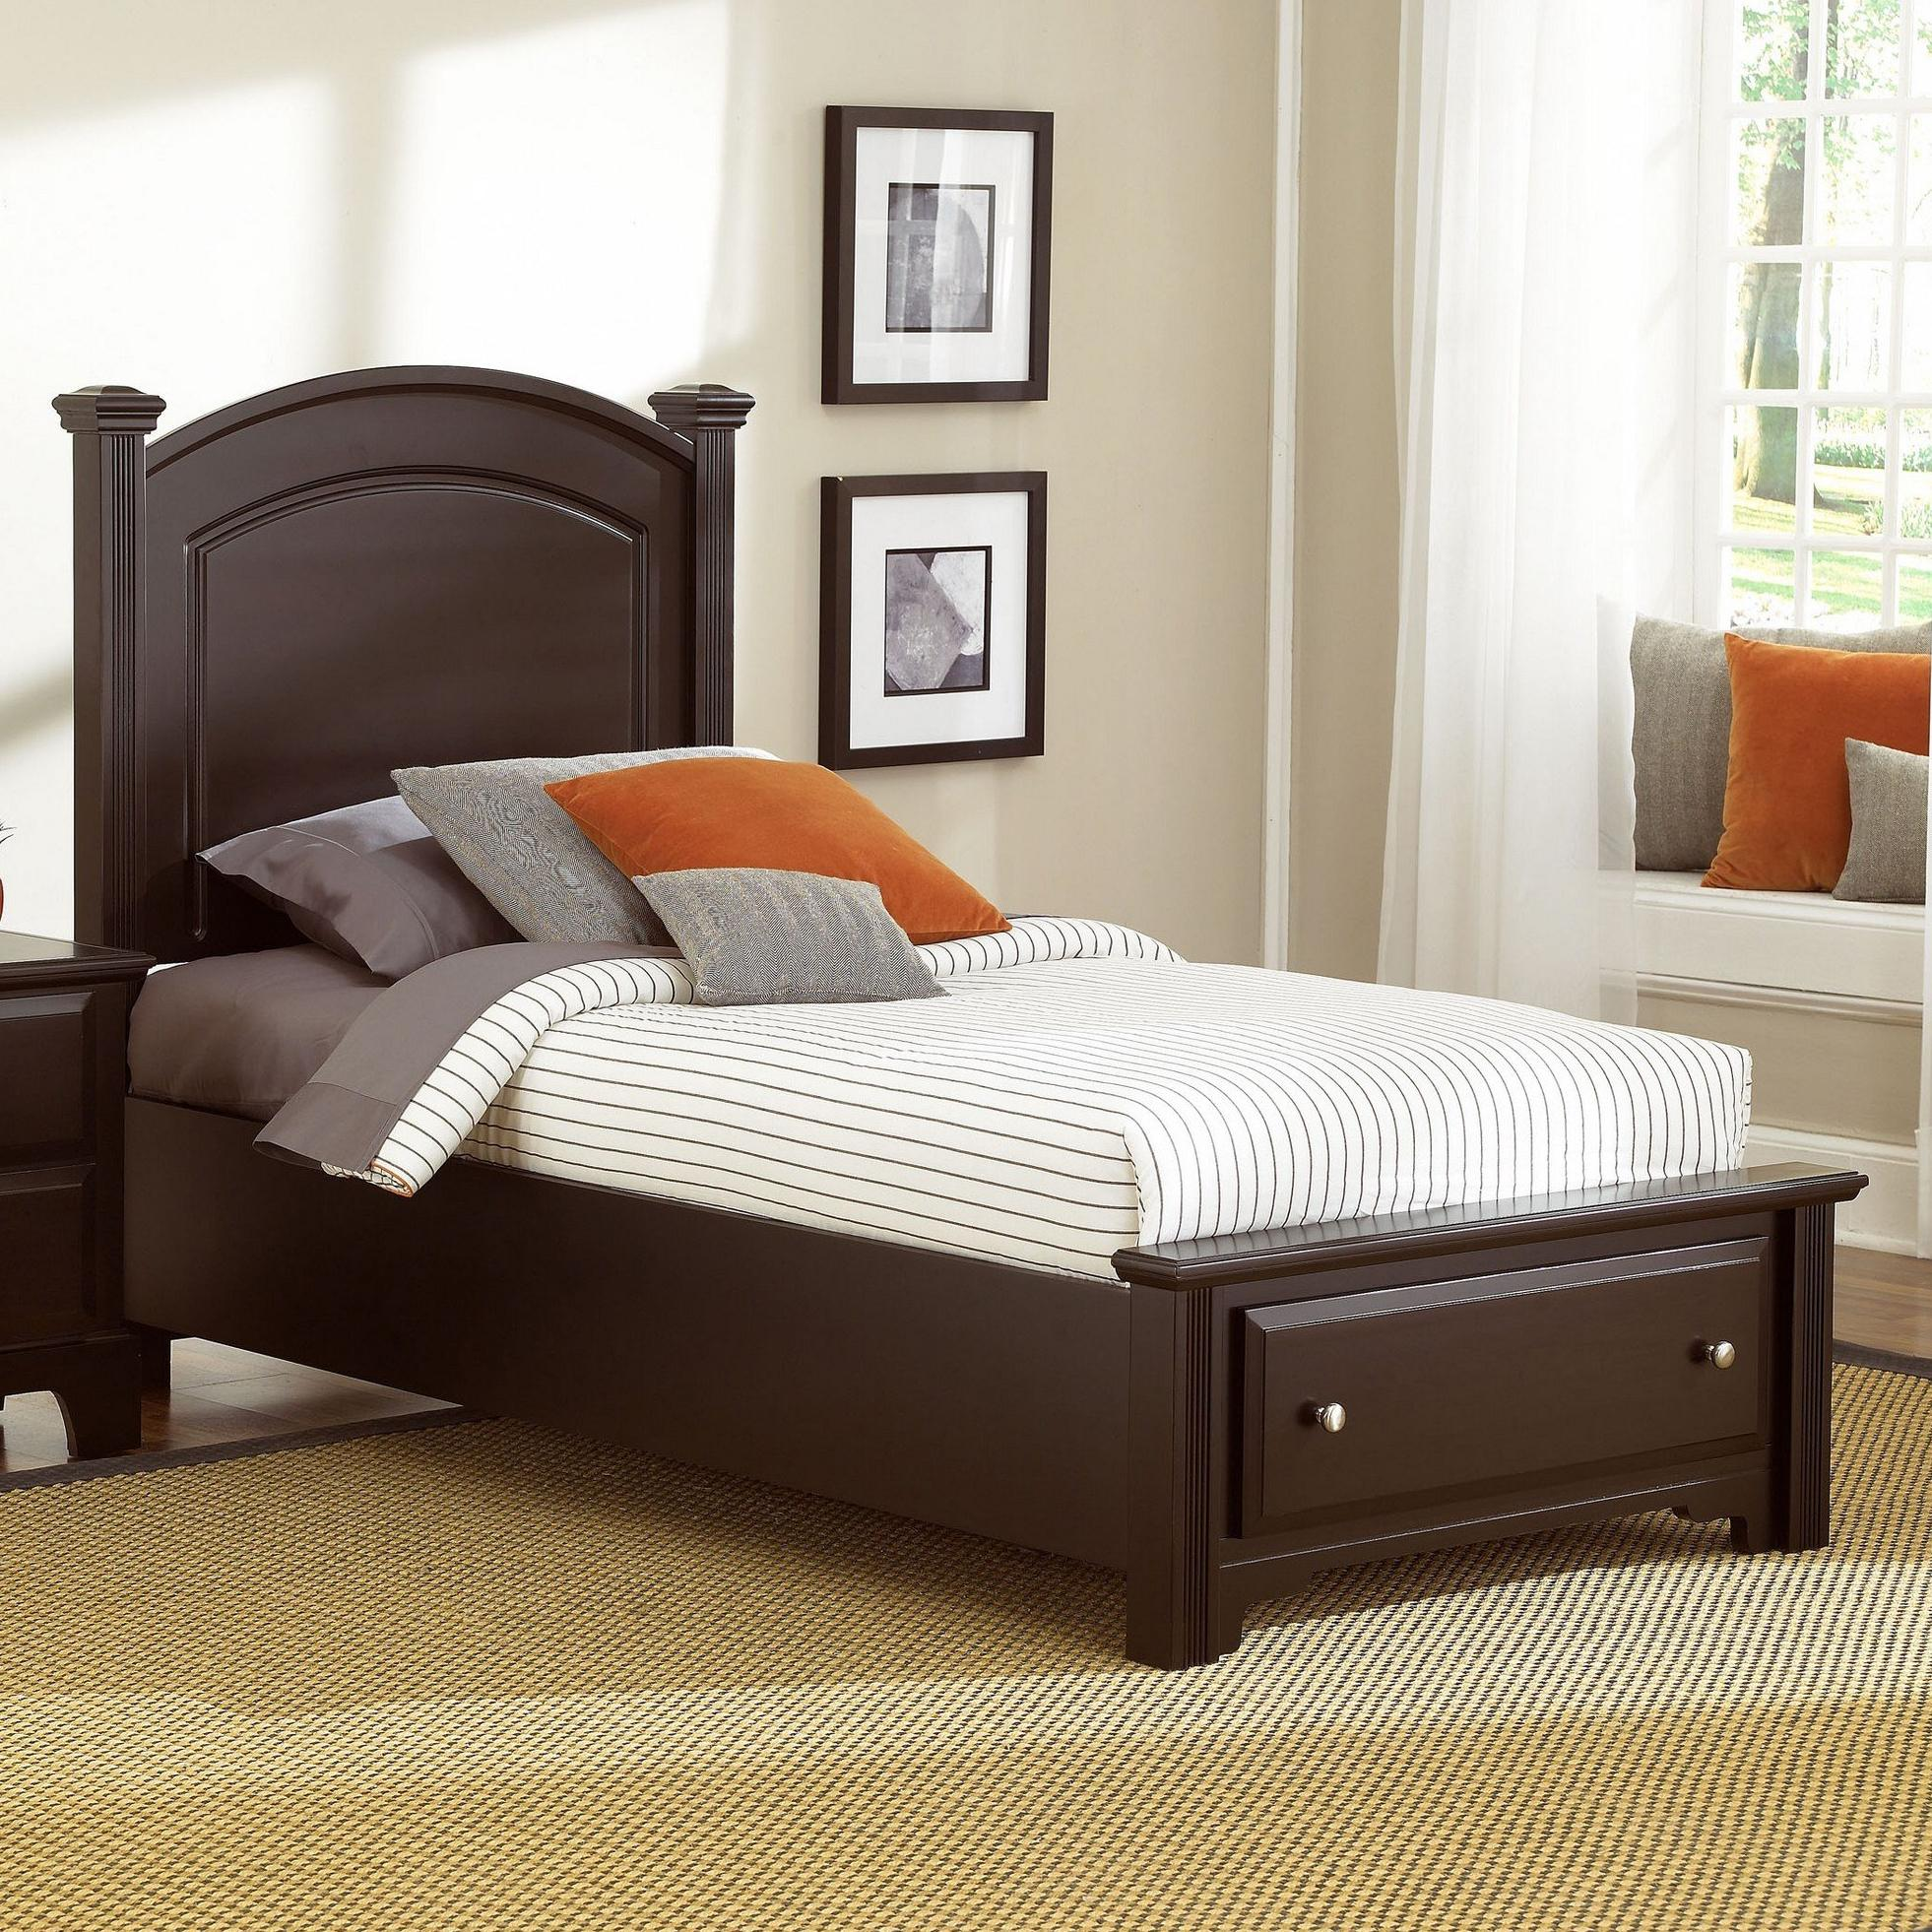 Hamilton/Franklin Twin Panel Storage Bed by Vaughan Bassett at Johnny Janosik